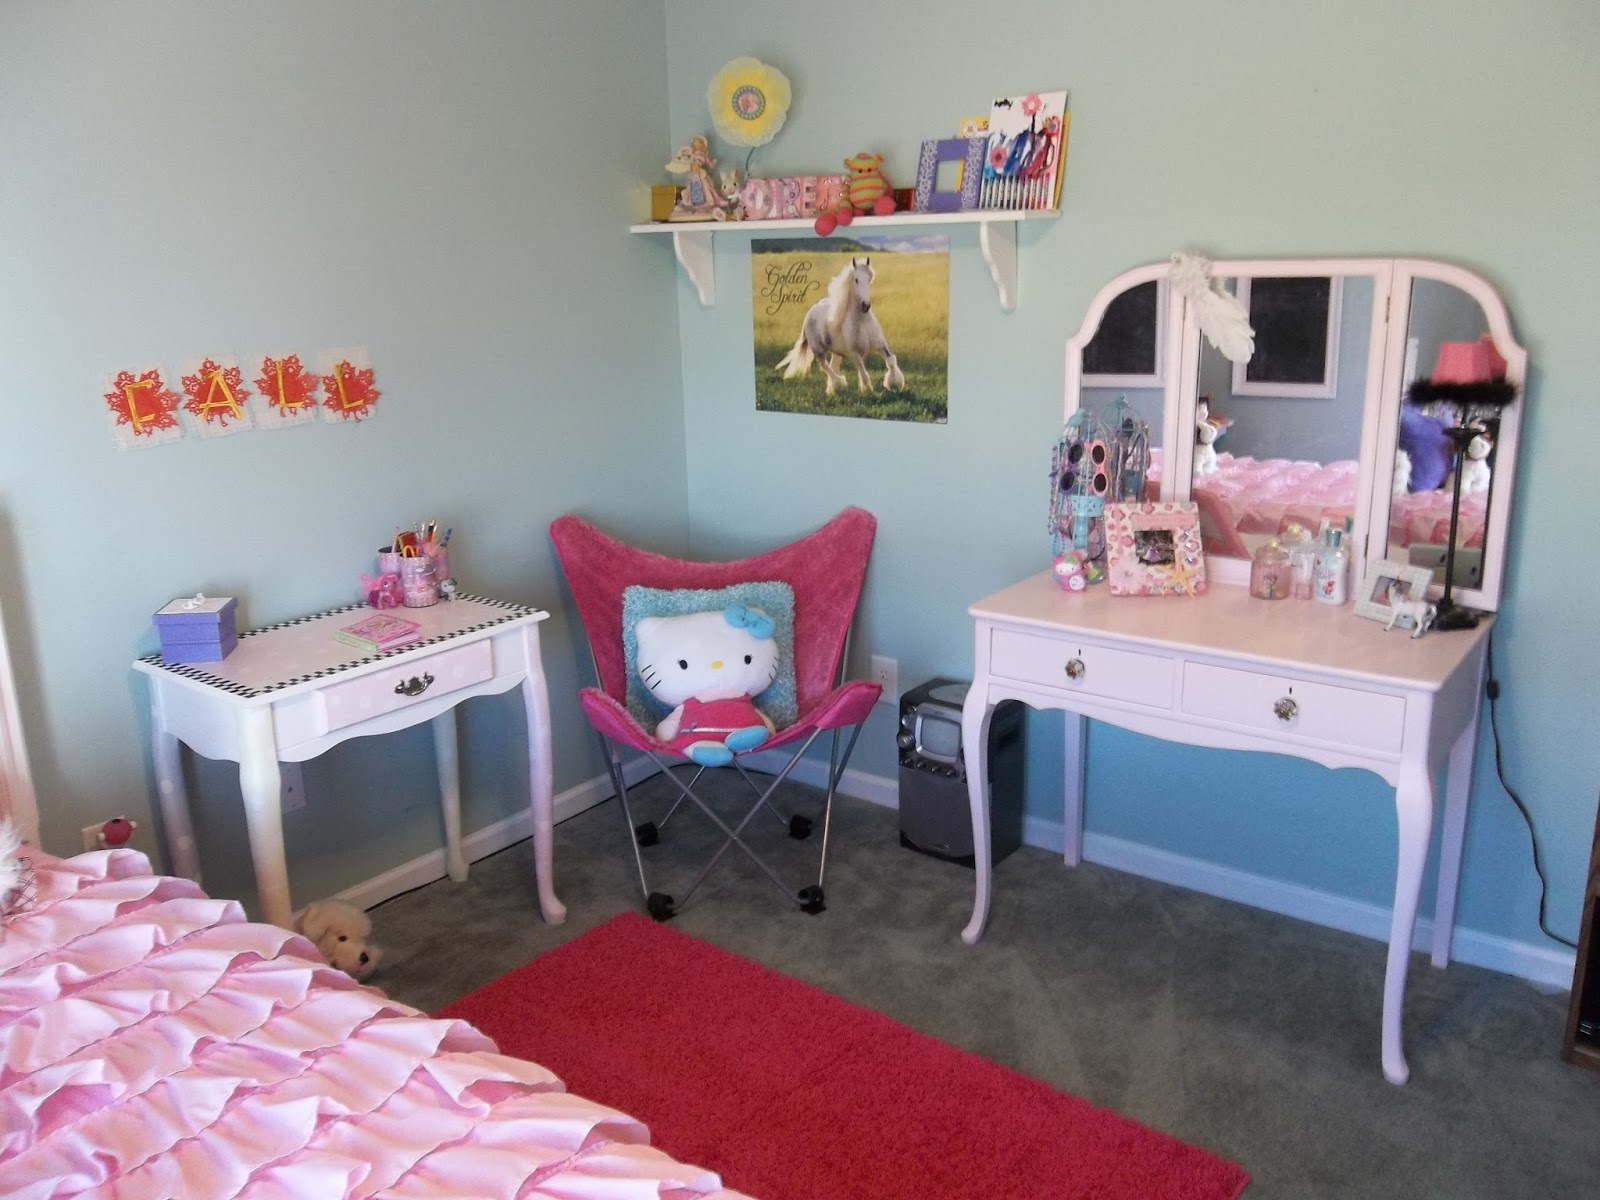 Vintage, Paint and more... little girls room done with painted thrifted furniture